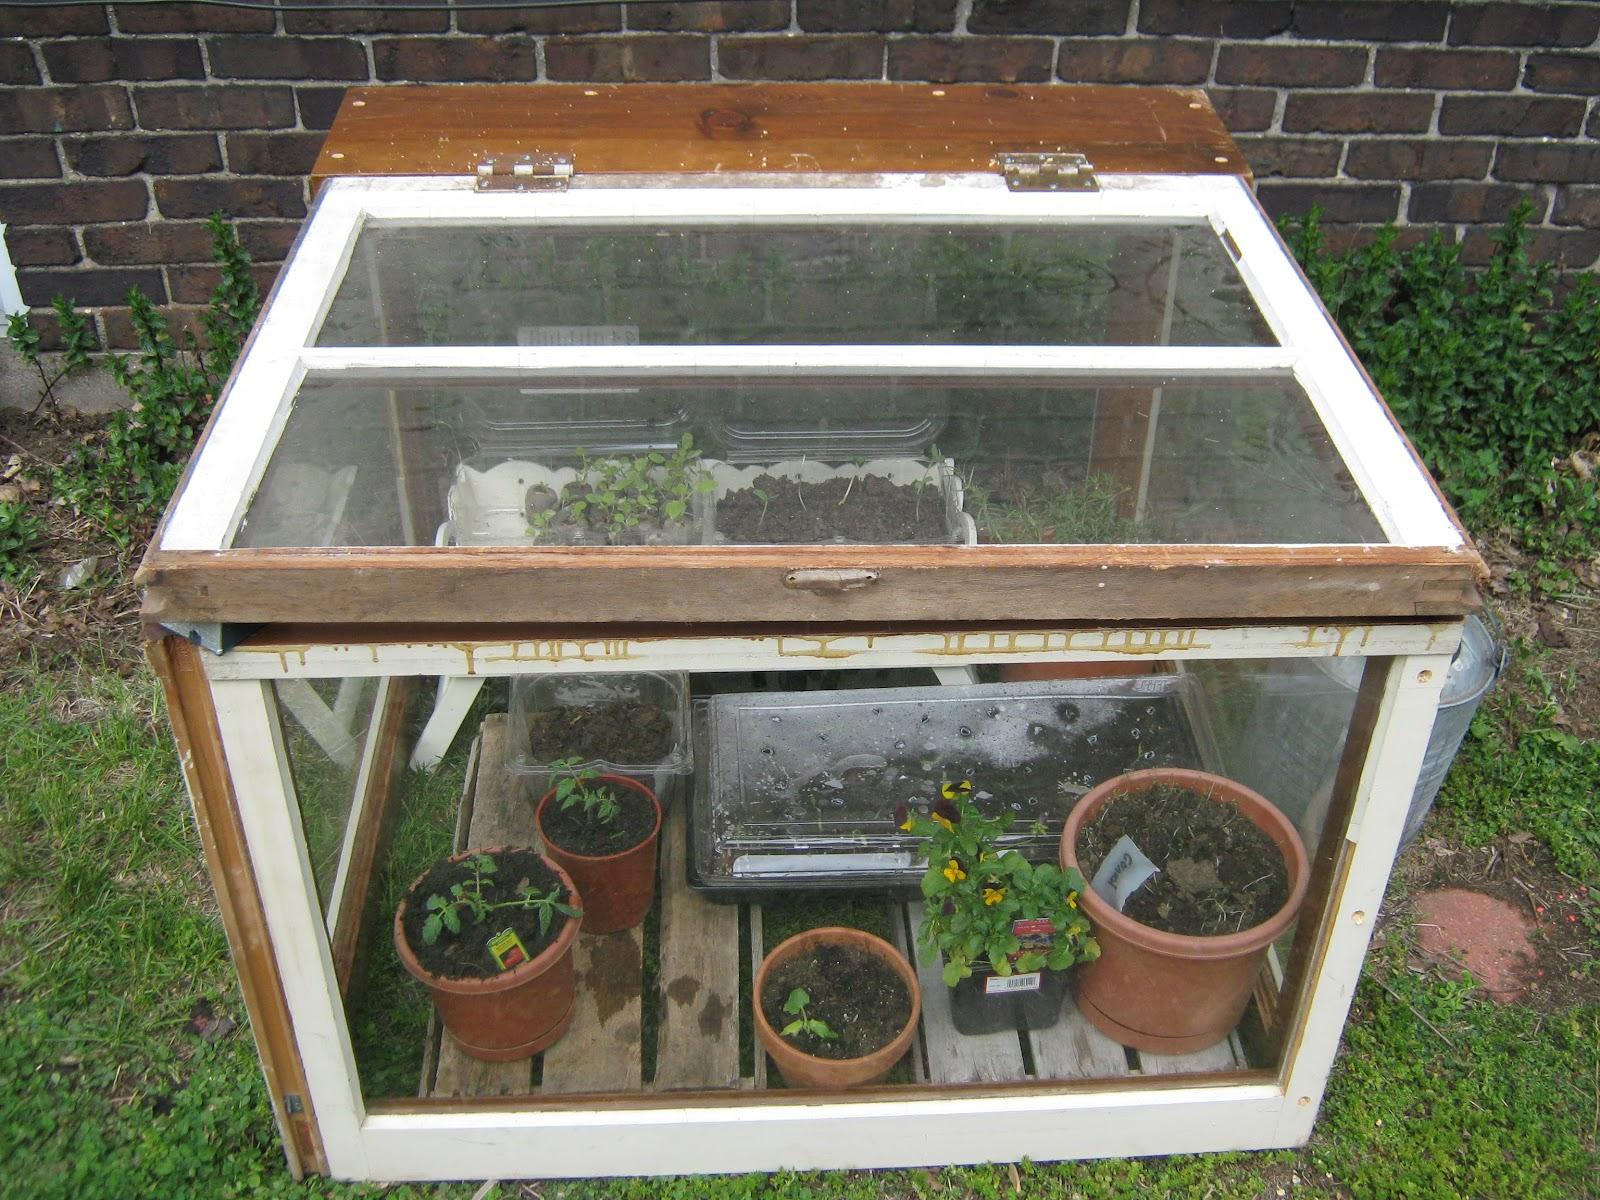 Build Small Greenhouse AntB Pottery Mini Greenhouse Or Hot Box